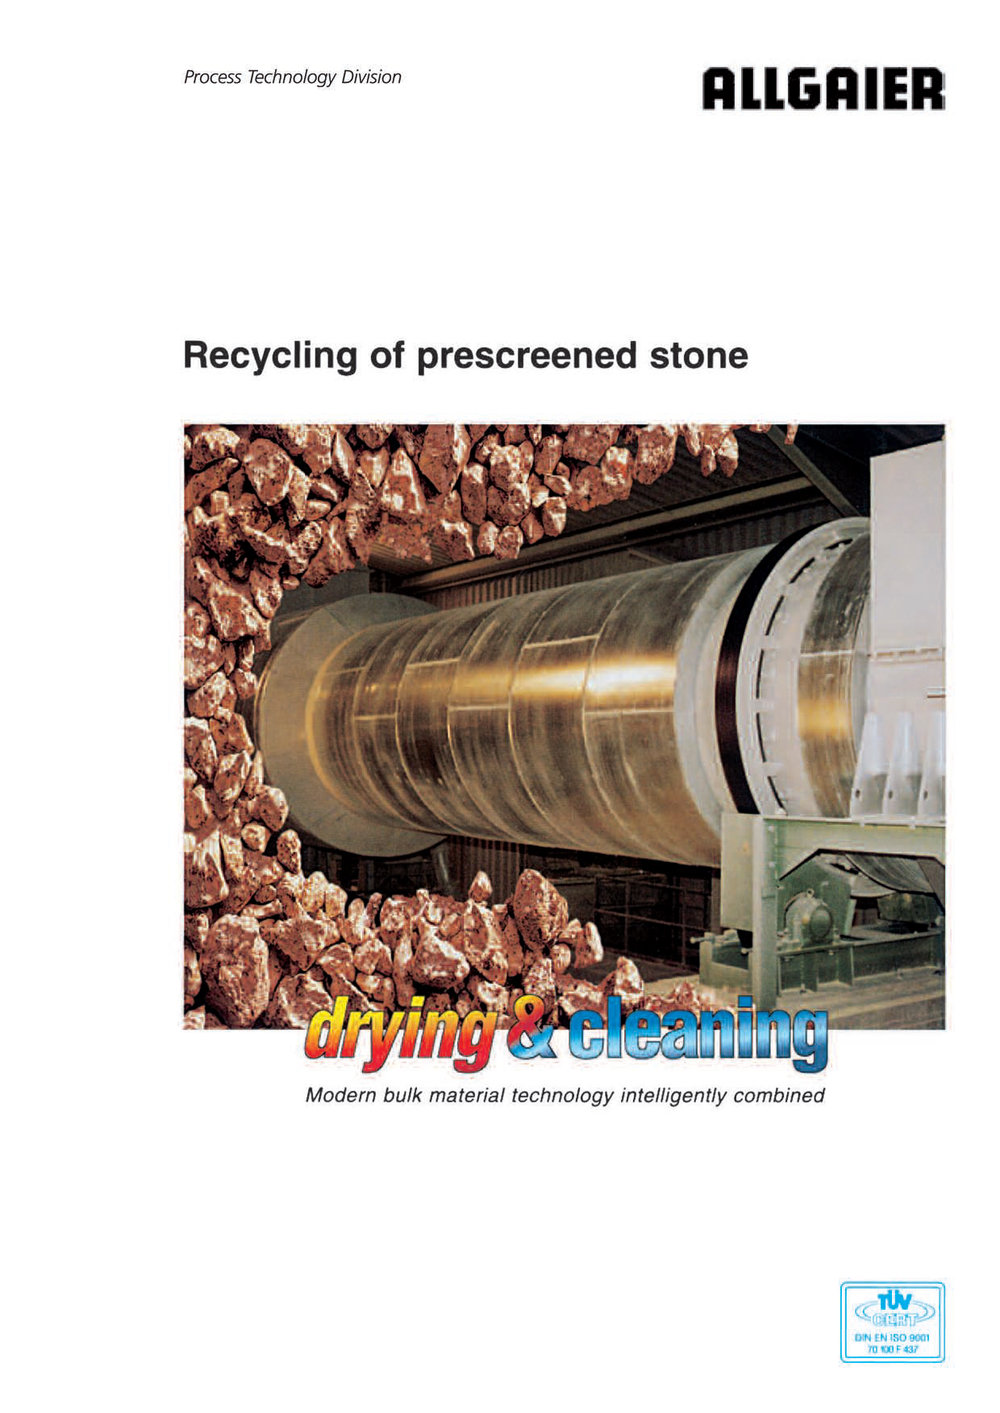 Recycling of prescreened stone